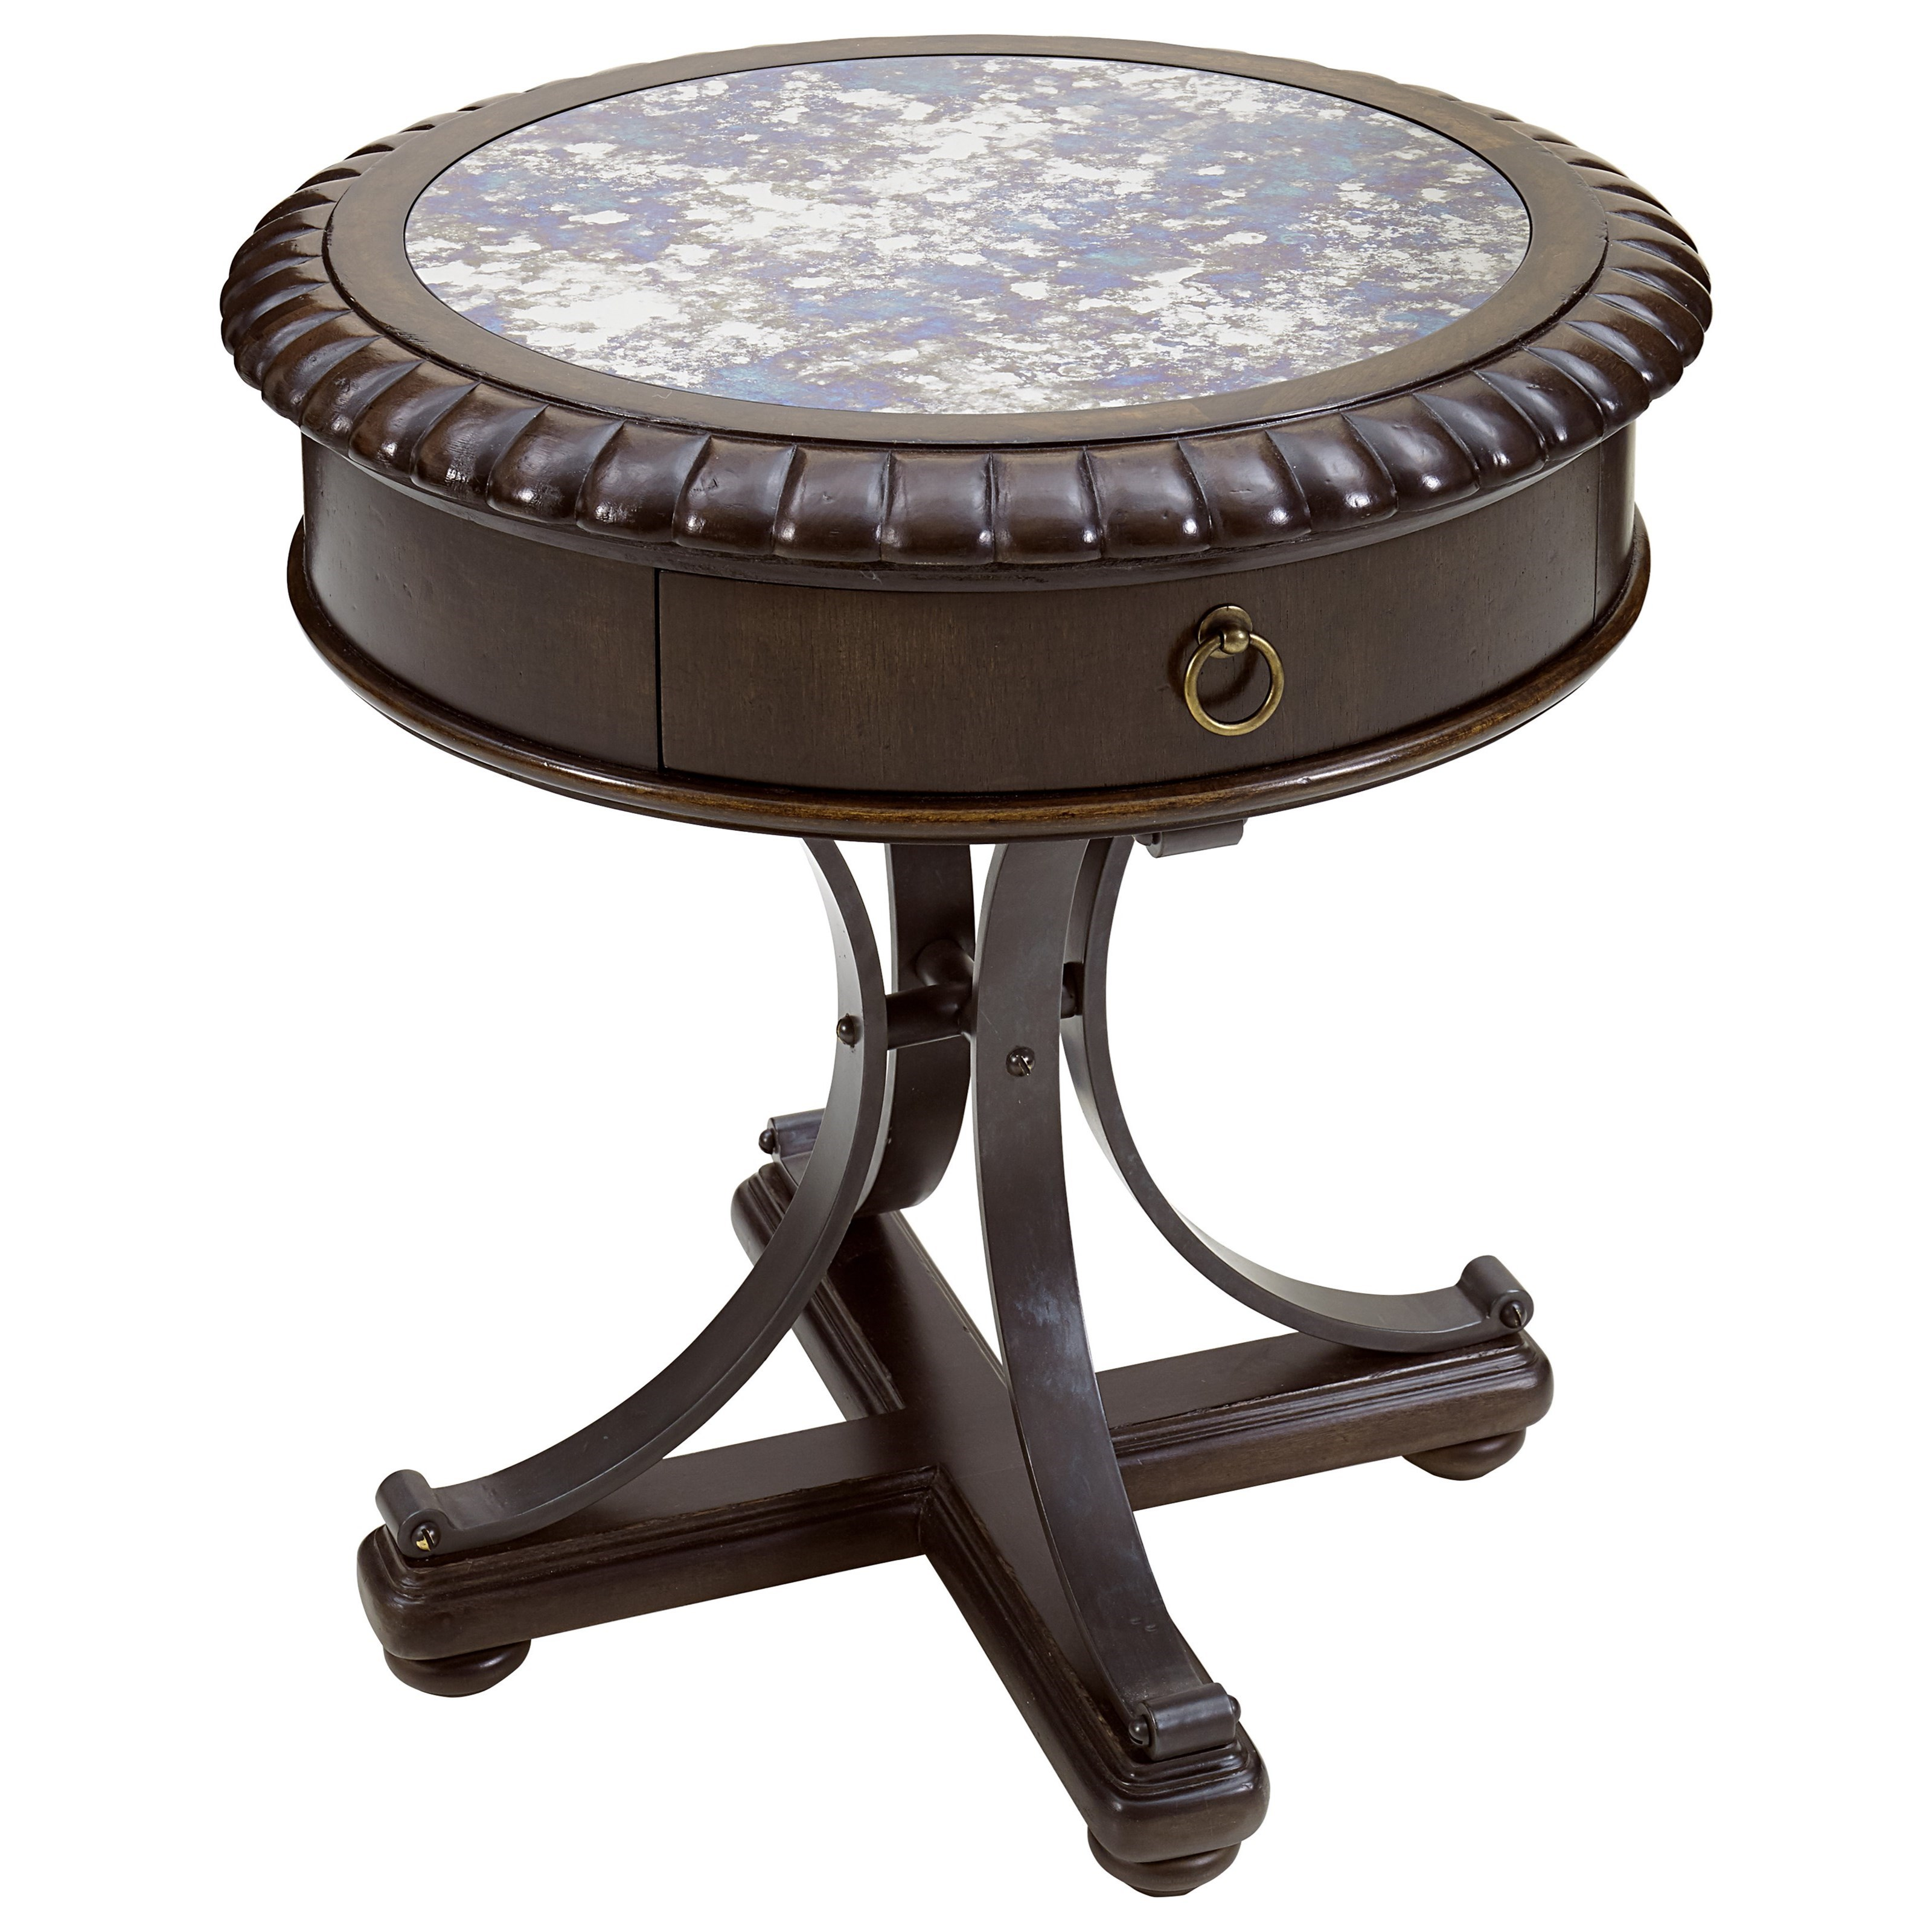 American Chapter Briarwood Lamp Table by A.R.T. Furniture Inc at Home Collections Furniture